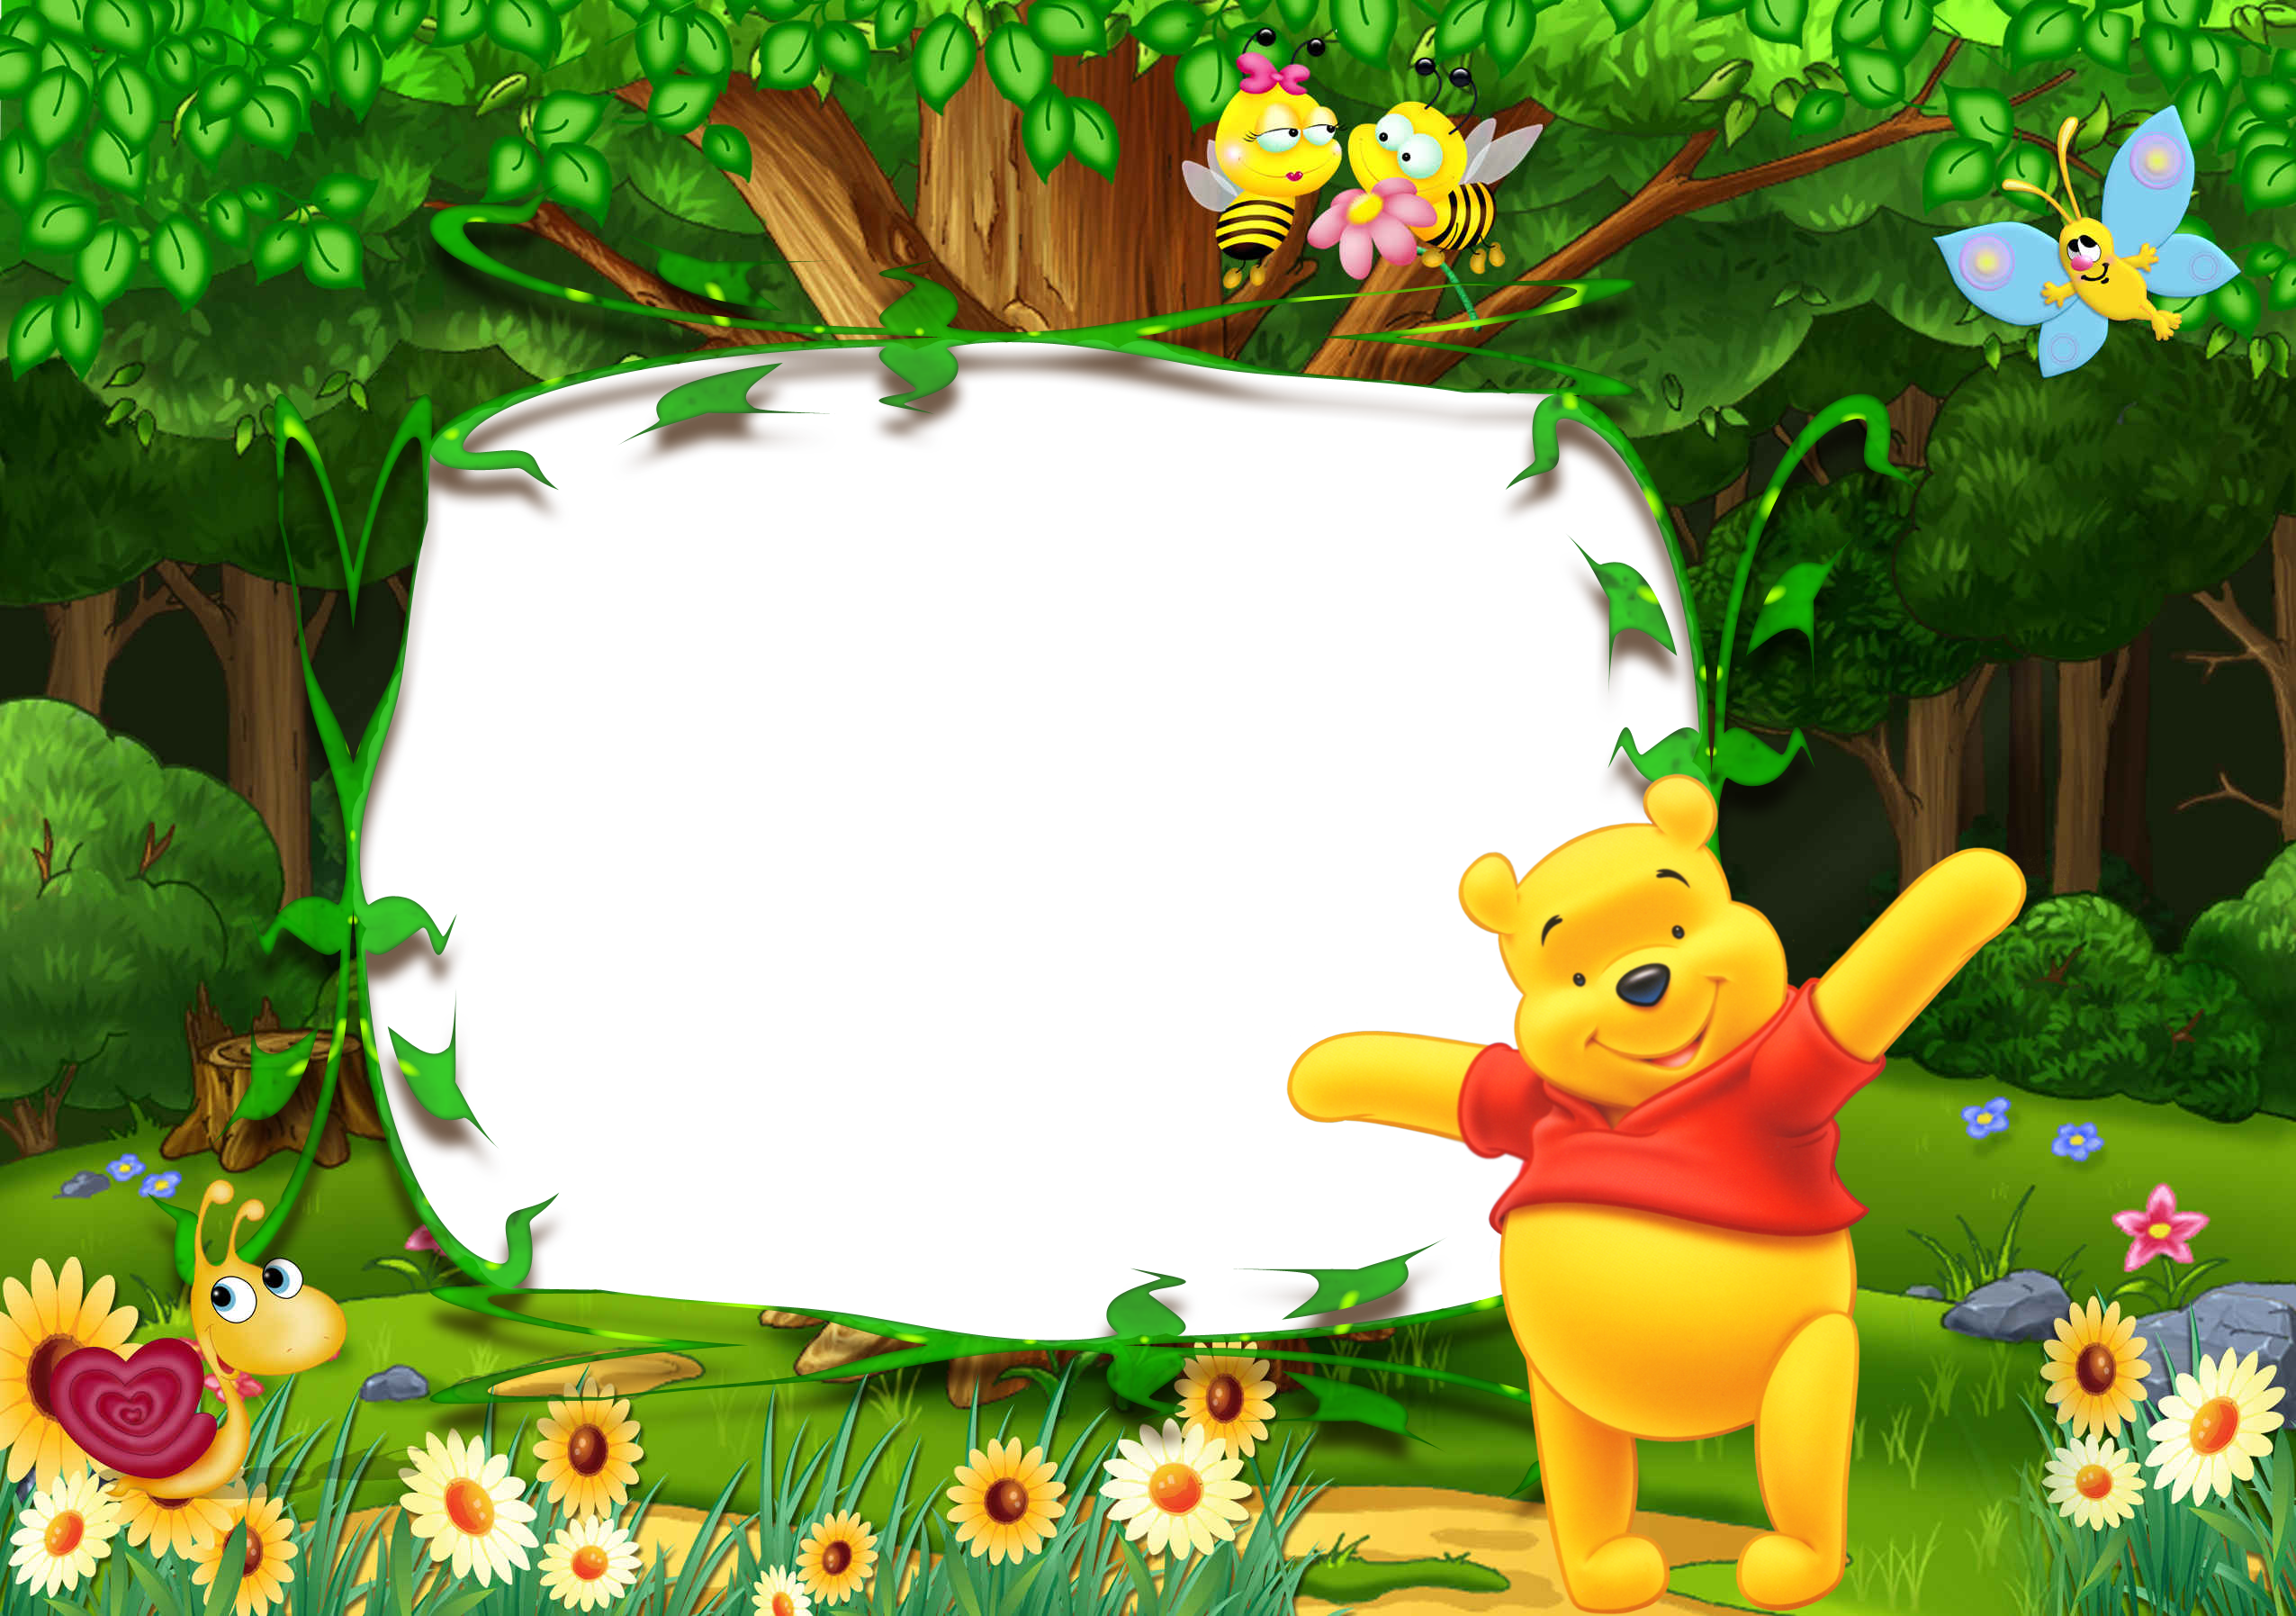 Frame clipart winnie the pooh The Frame Winnie size